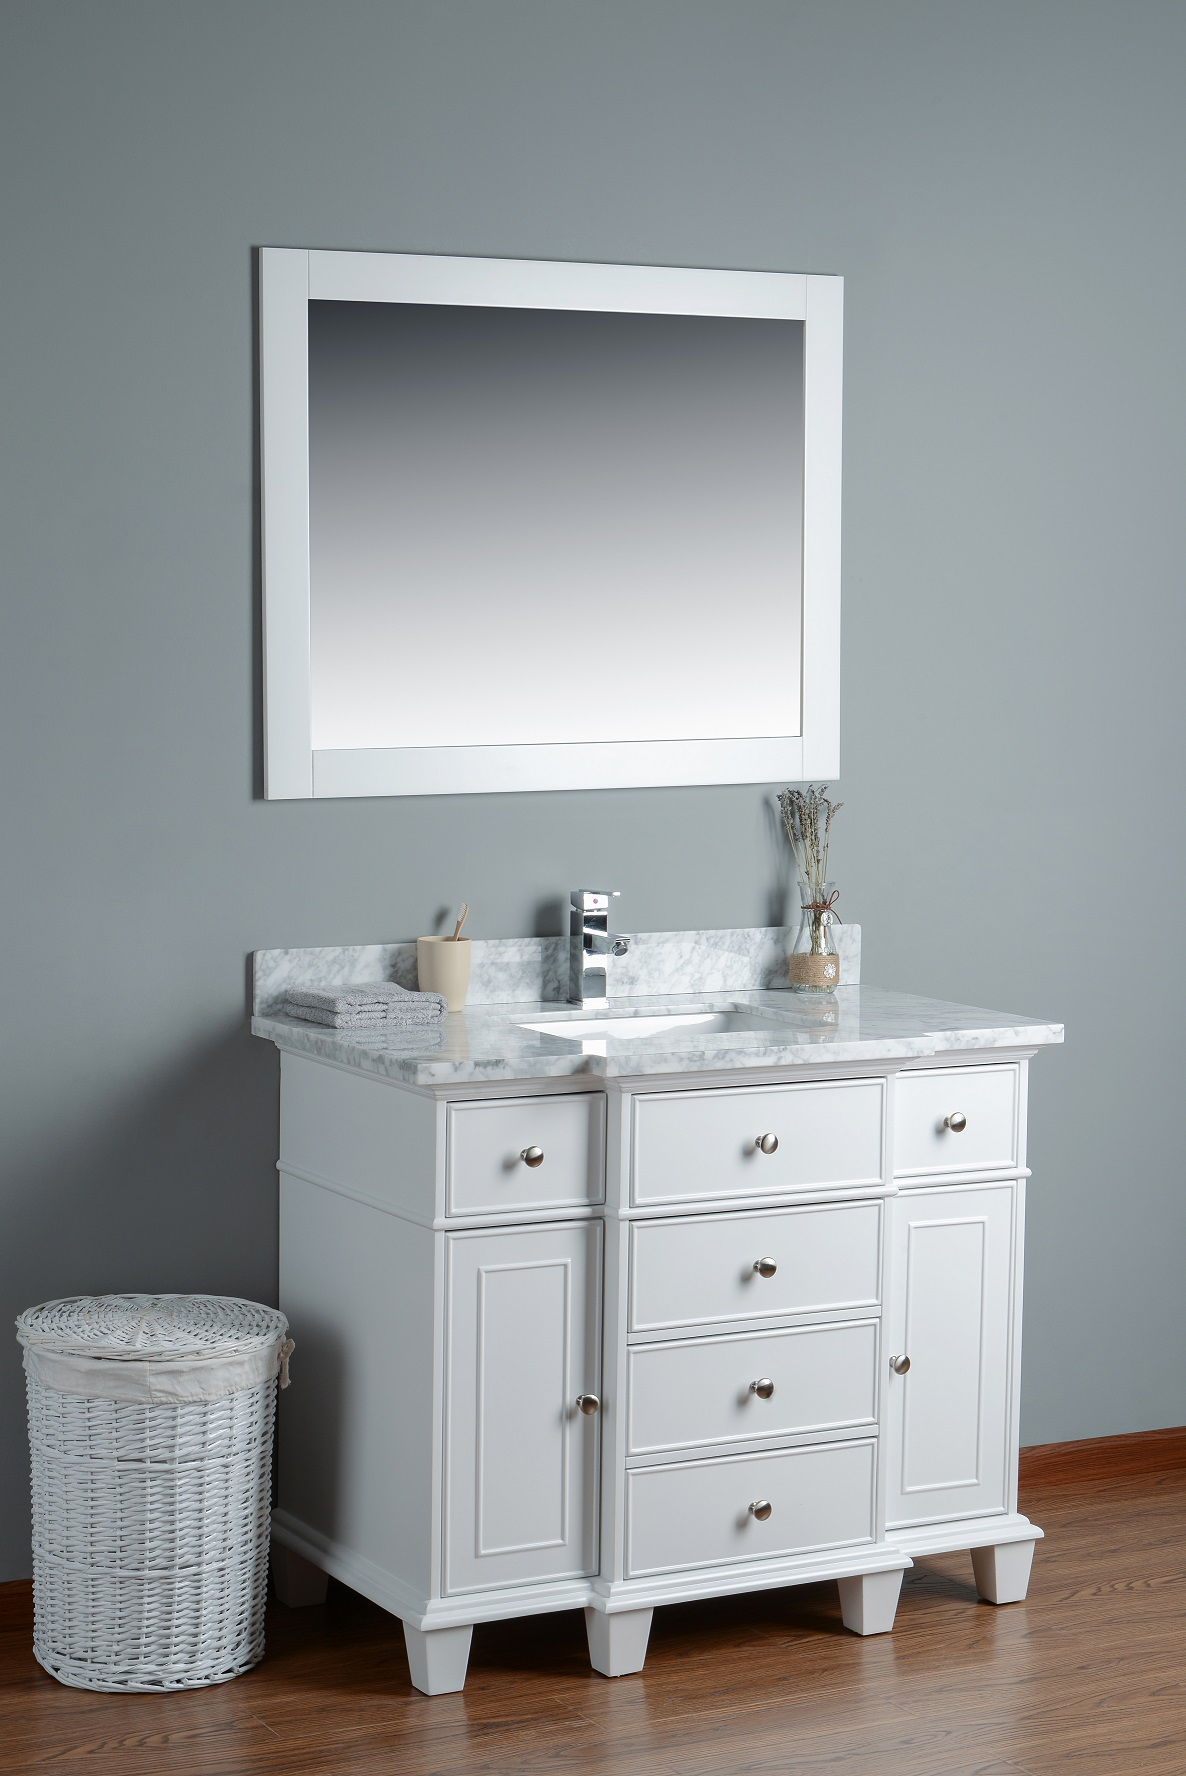 42 Inch White Vanity 42 Inch White Bathroom Vanity 42 Inch White Vanity With Marble Top